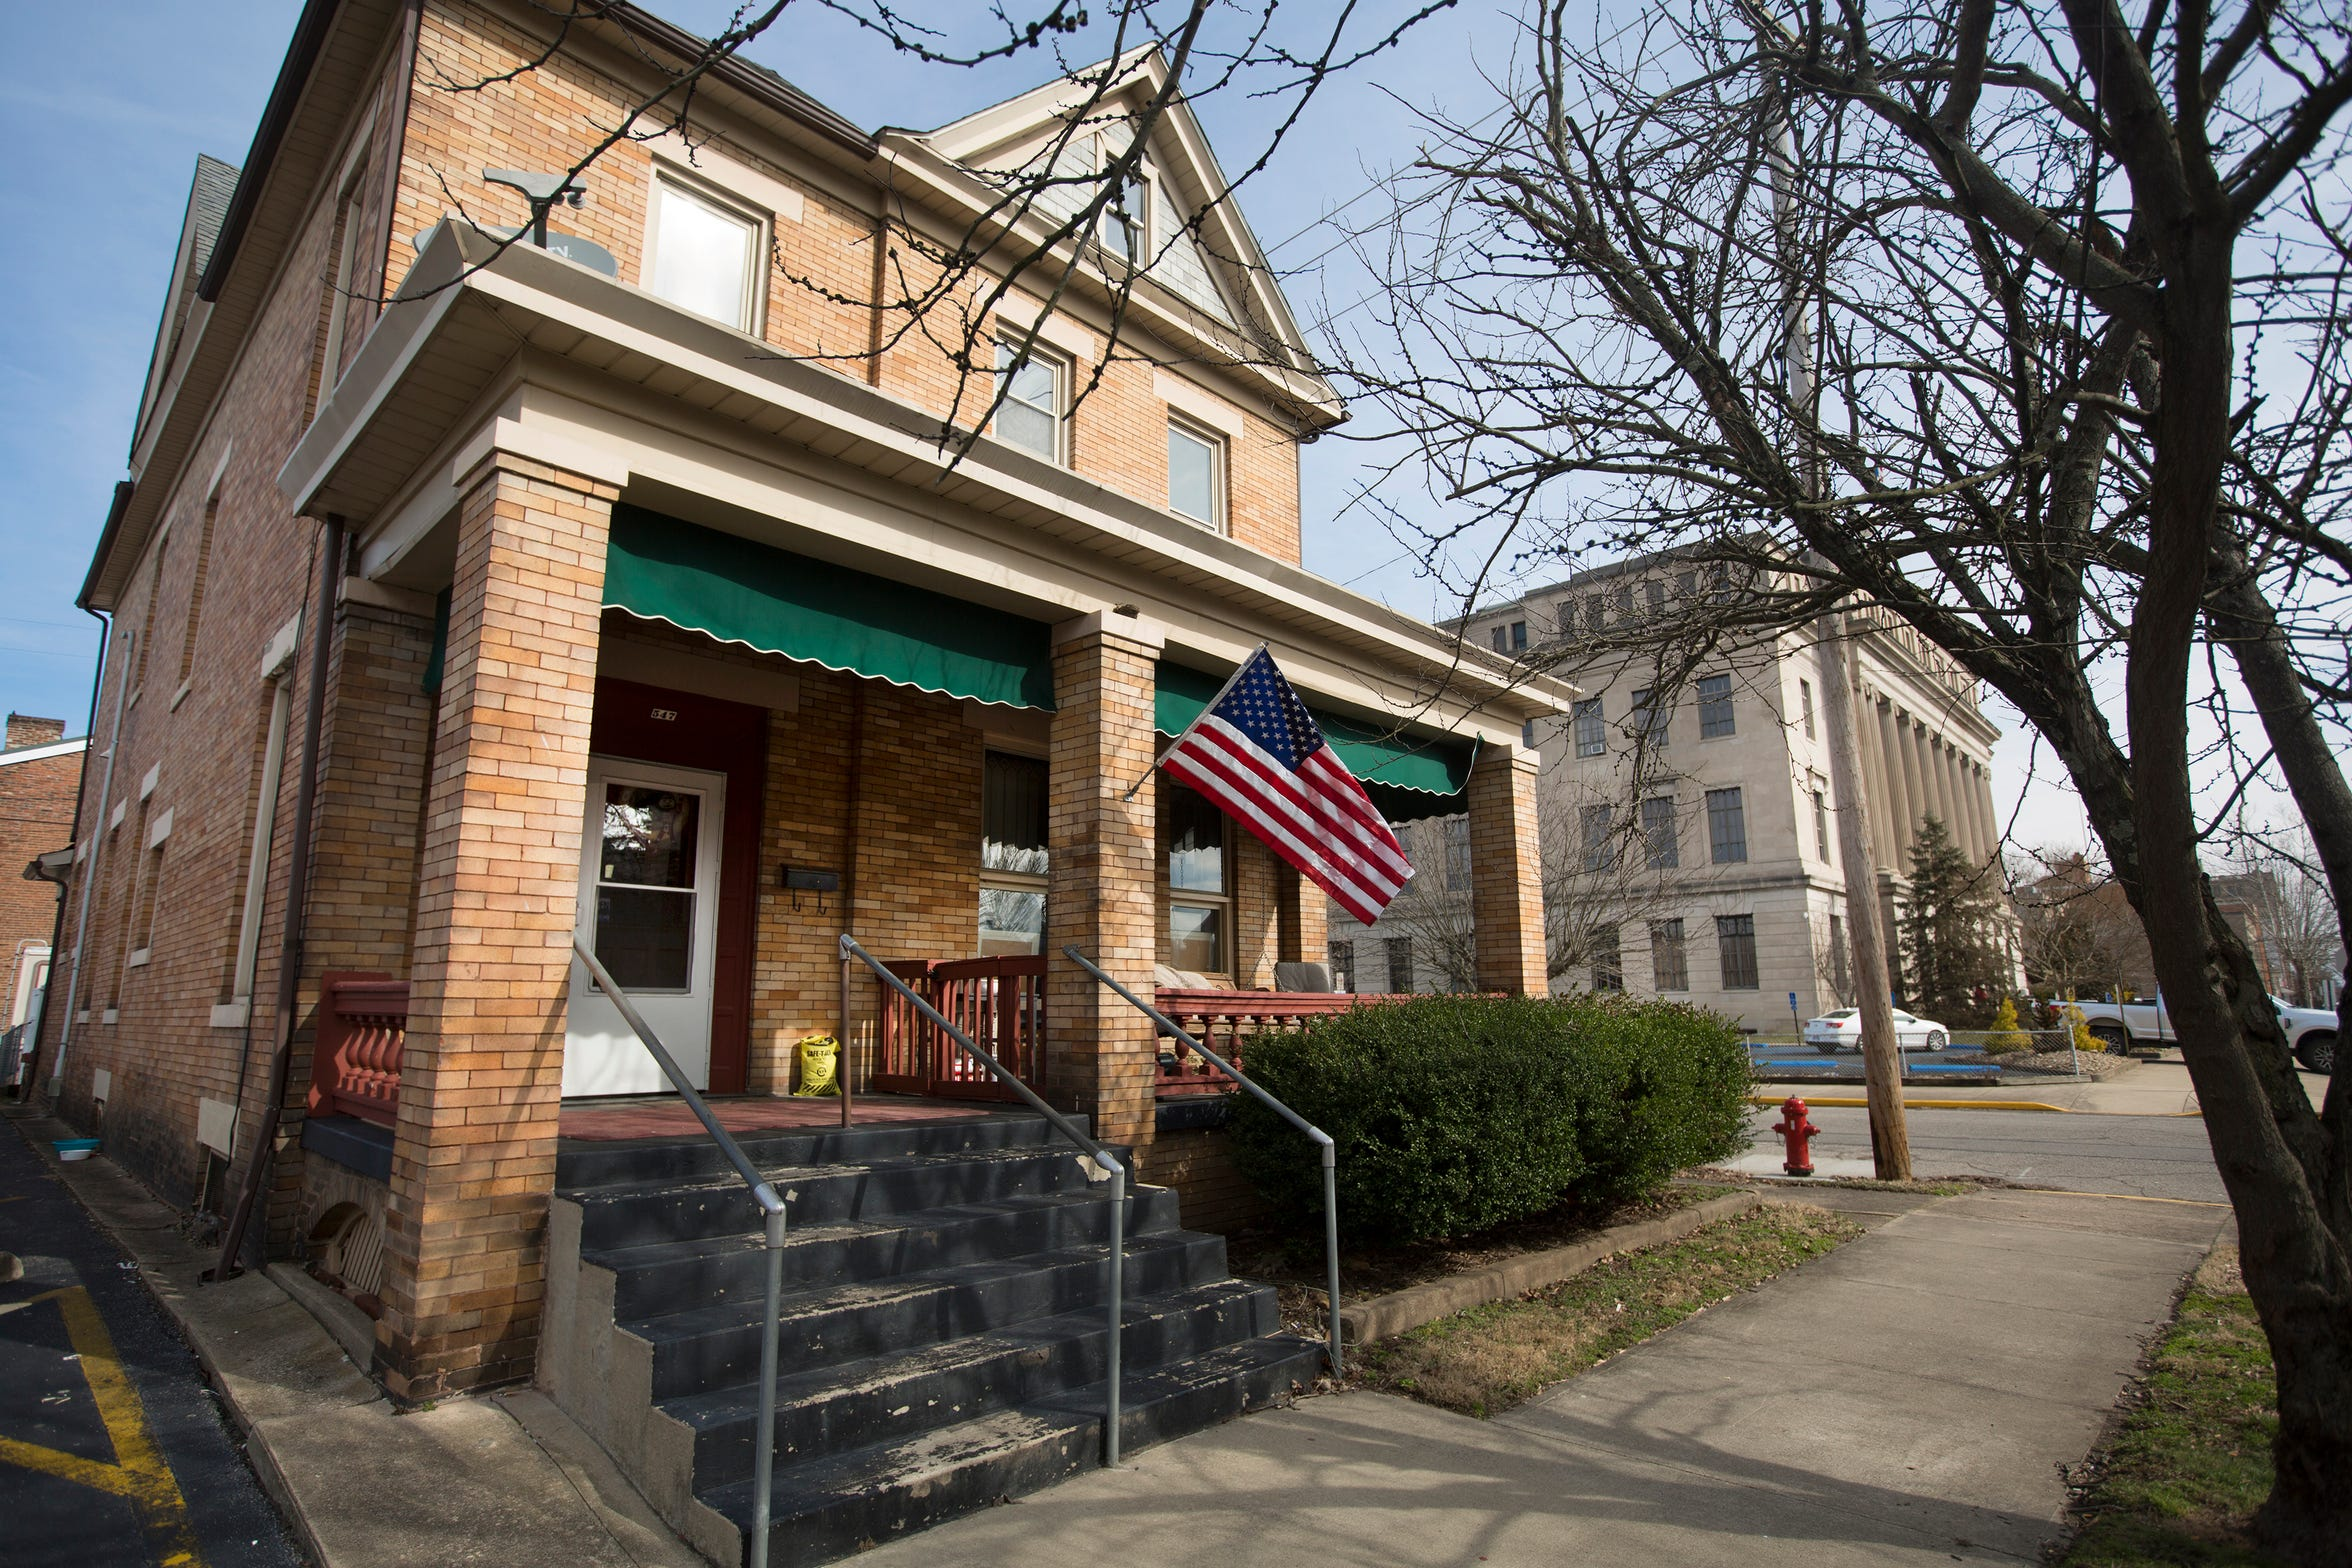 Michael Mearan, 72, is a prominent Portsmouth, Ohio attorney. His home and office sit conveniently next to the Scioto County Courthouse. The Ironton native and Ohio State alum, has long been rumored to run a sex trafficking operation out of this small rural town.